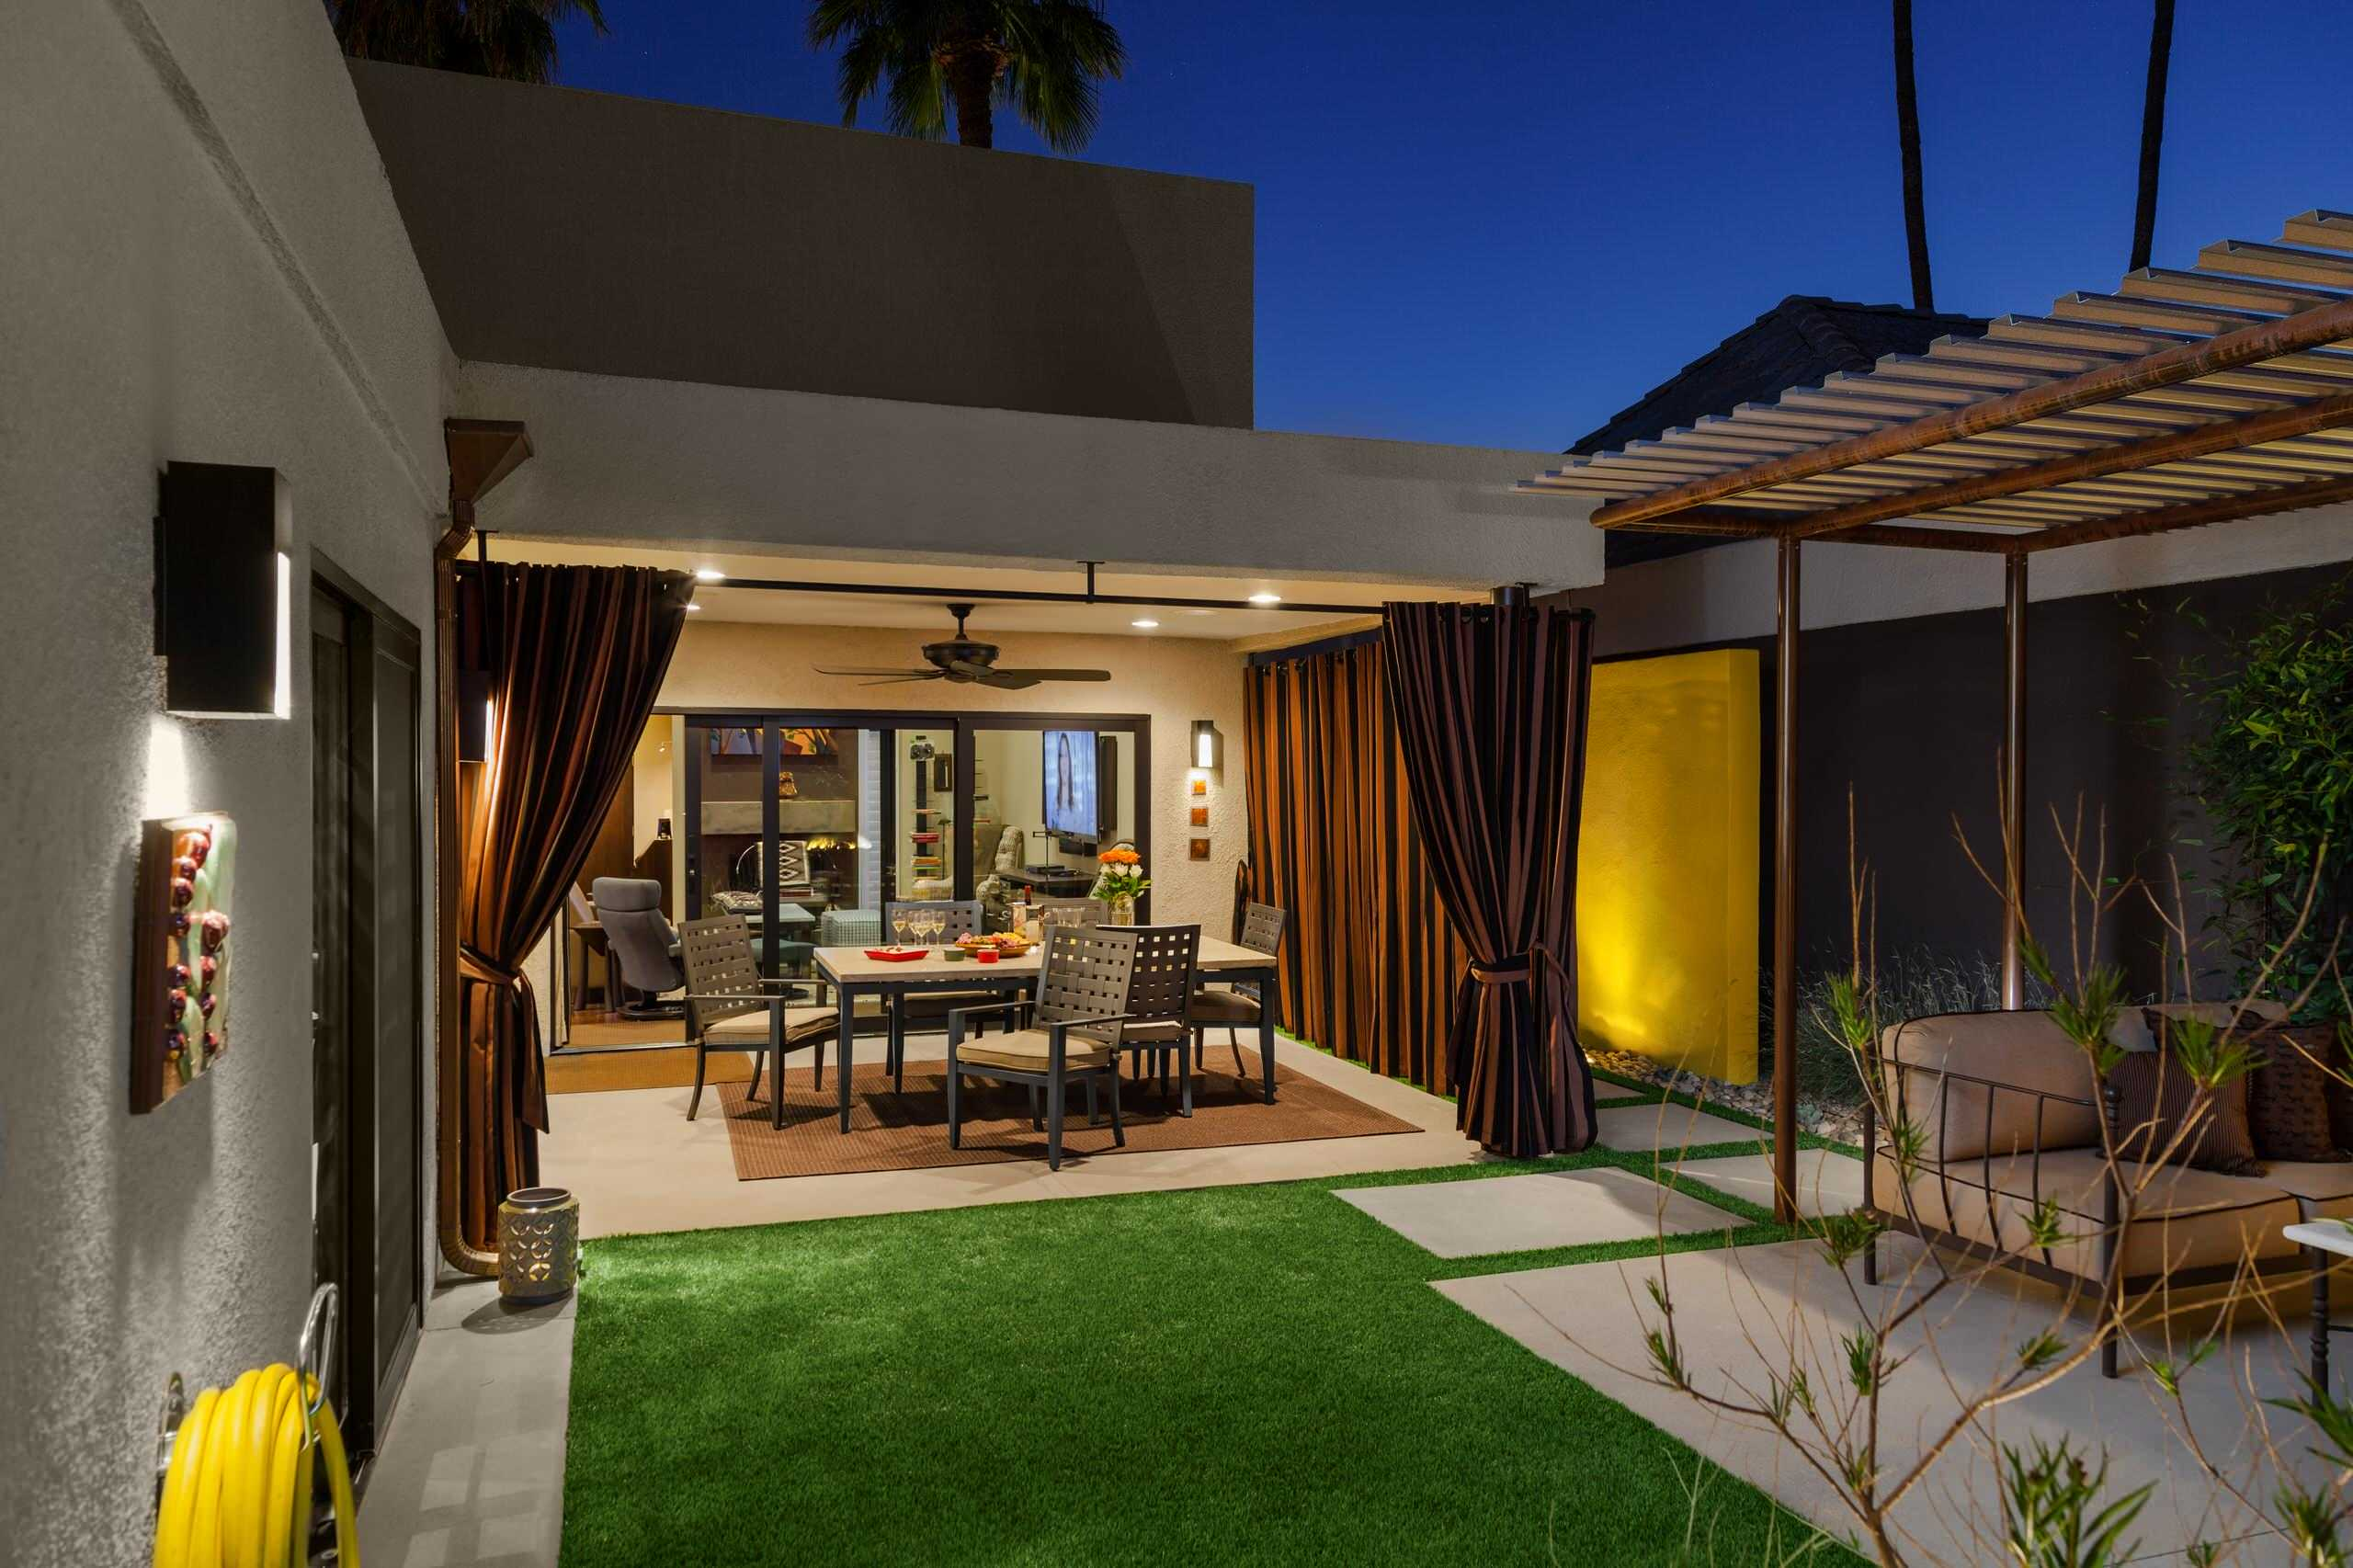 Outdoor Patio Designs 18 Spectacular Modern Patio Designs To Enjoy The Outdoors